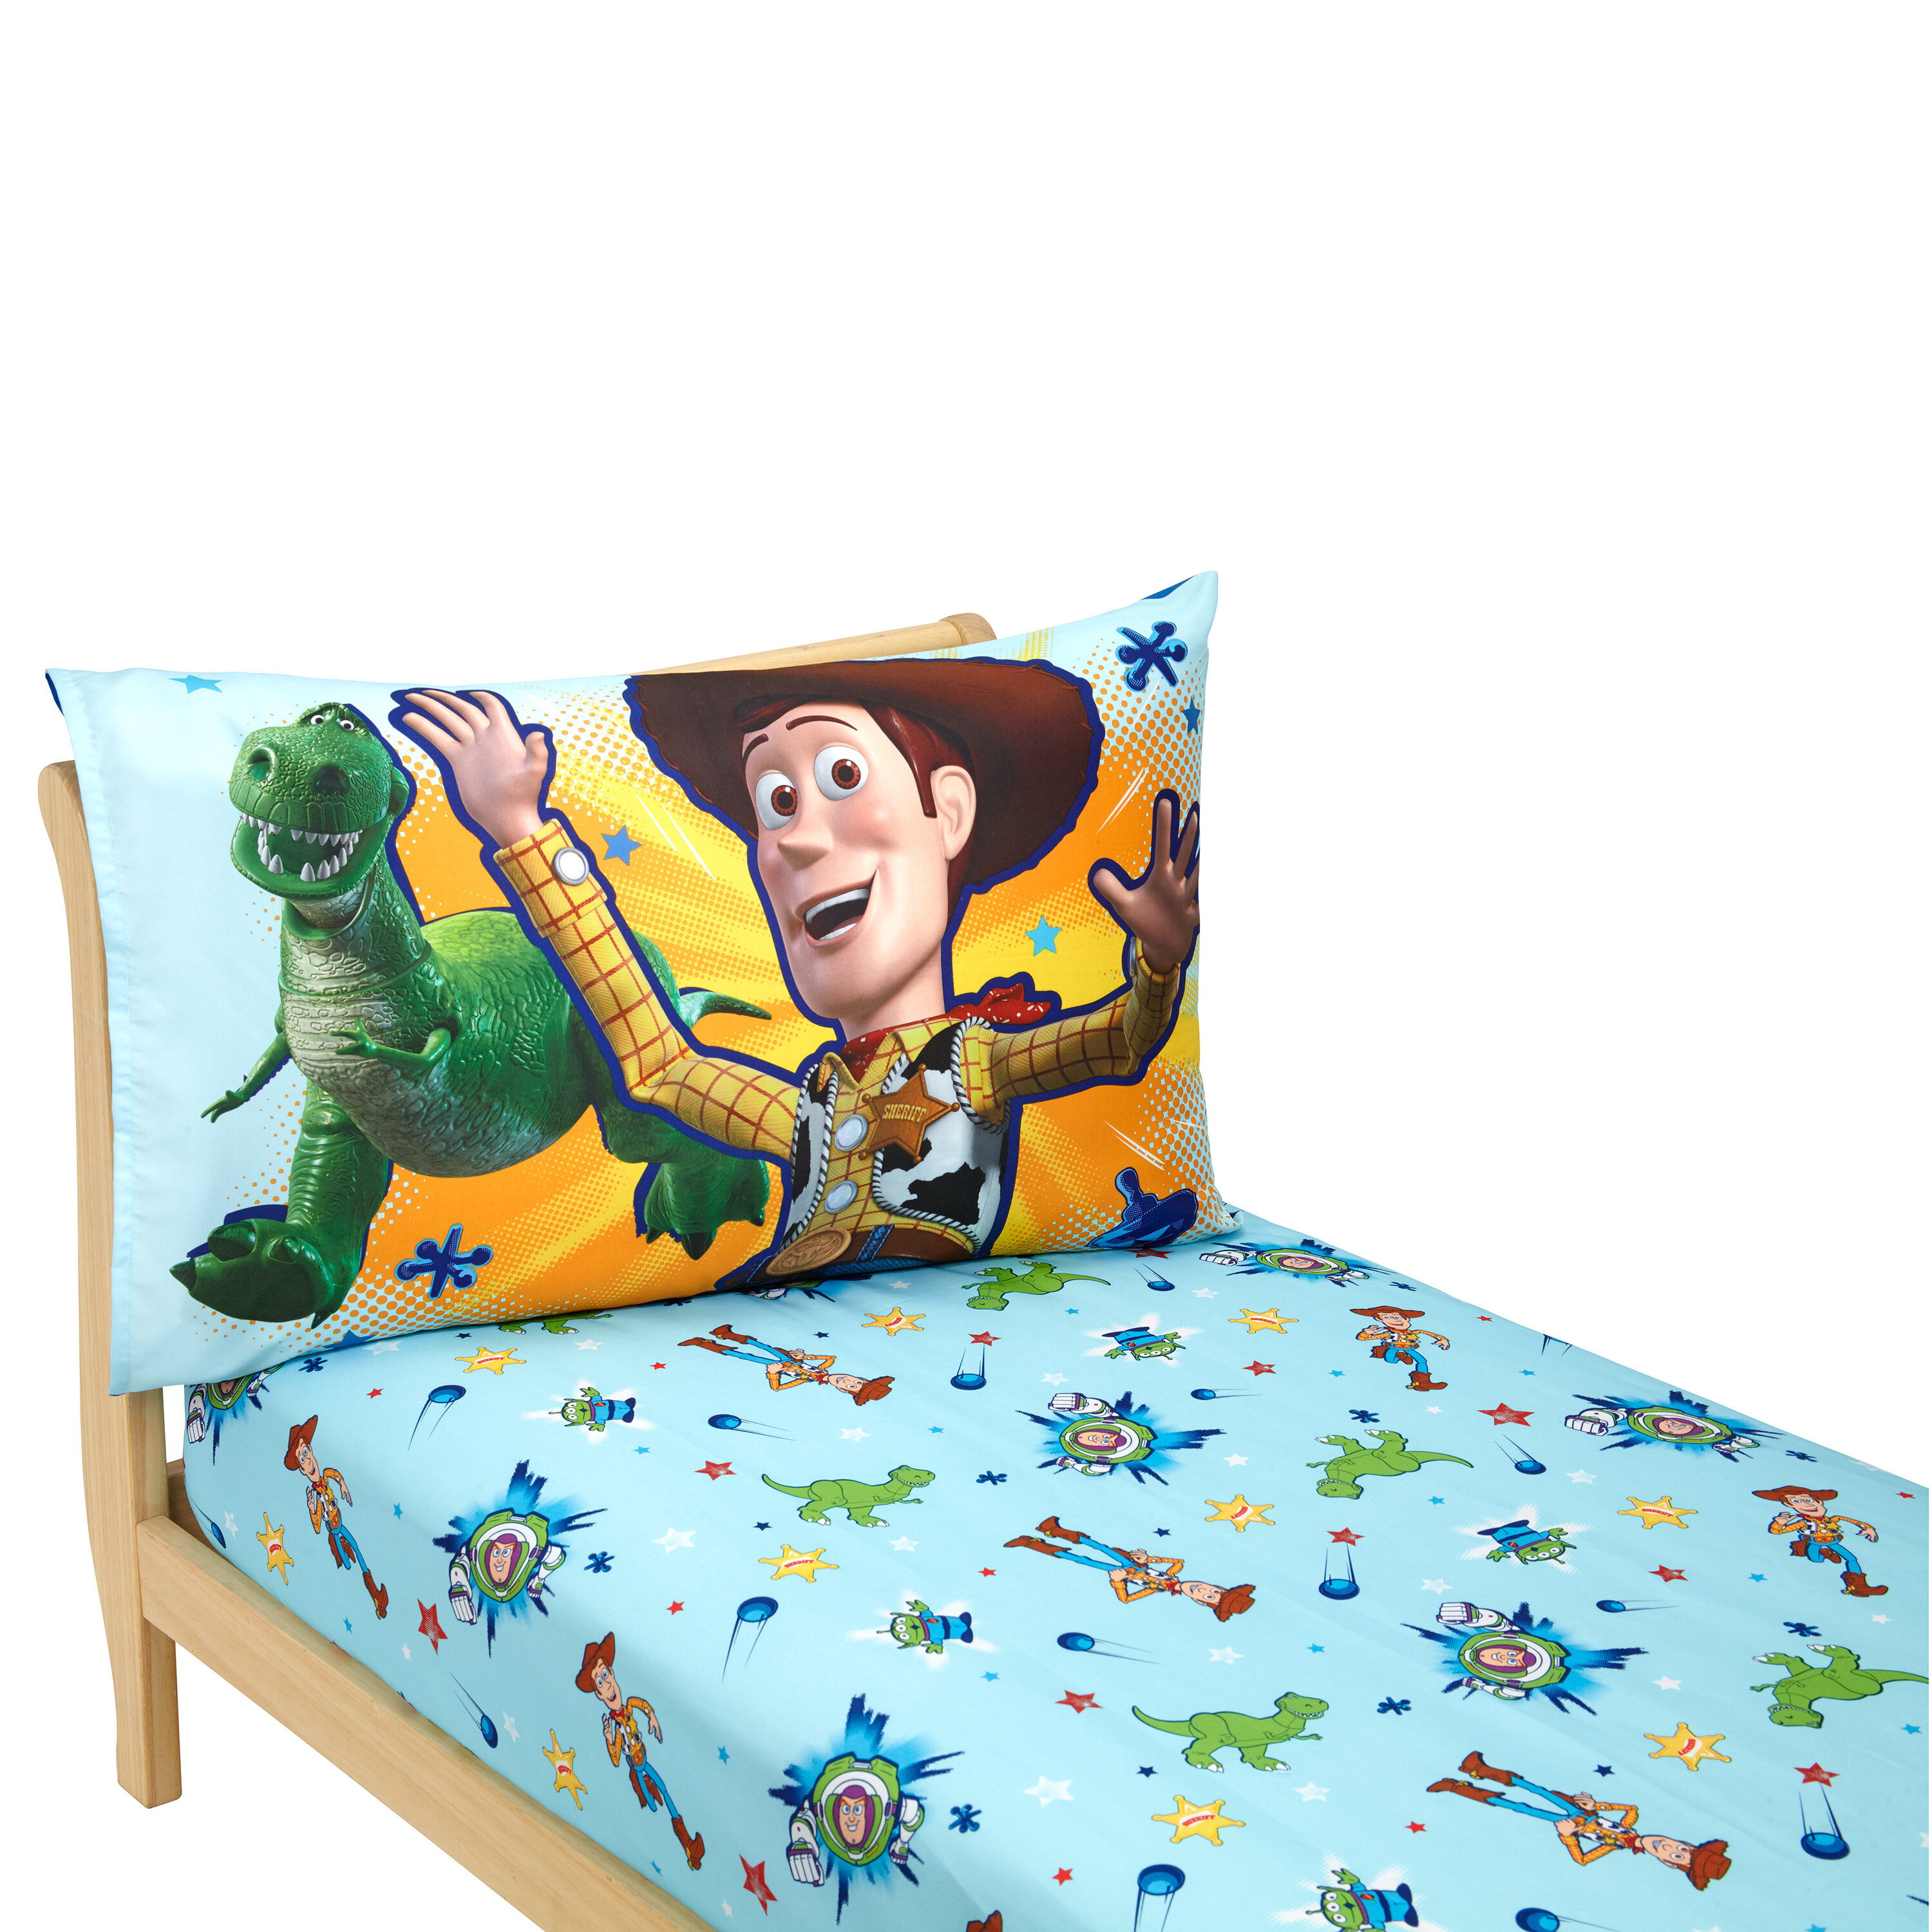 Toy Story Toddler Bed.Disney Toy Story Power Up 2 Piece Toddler Bedding Set